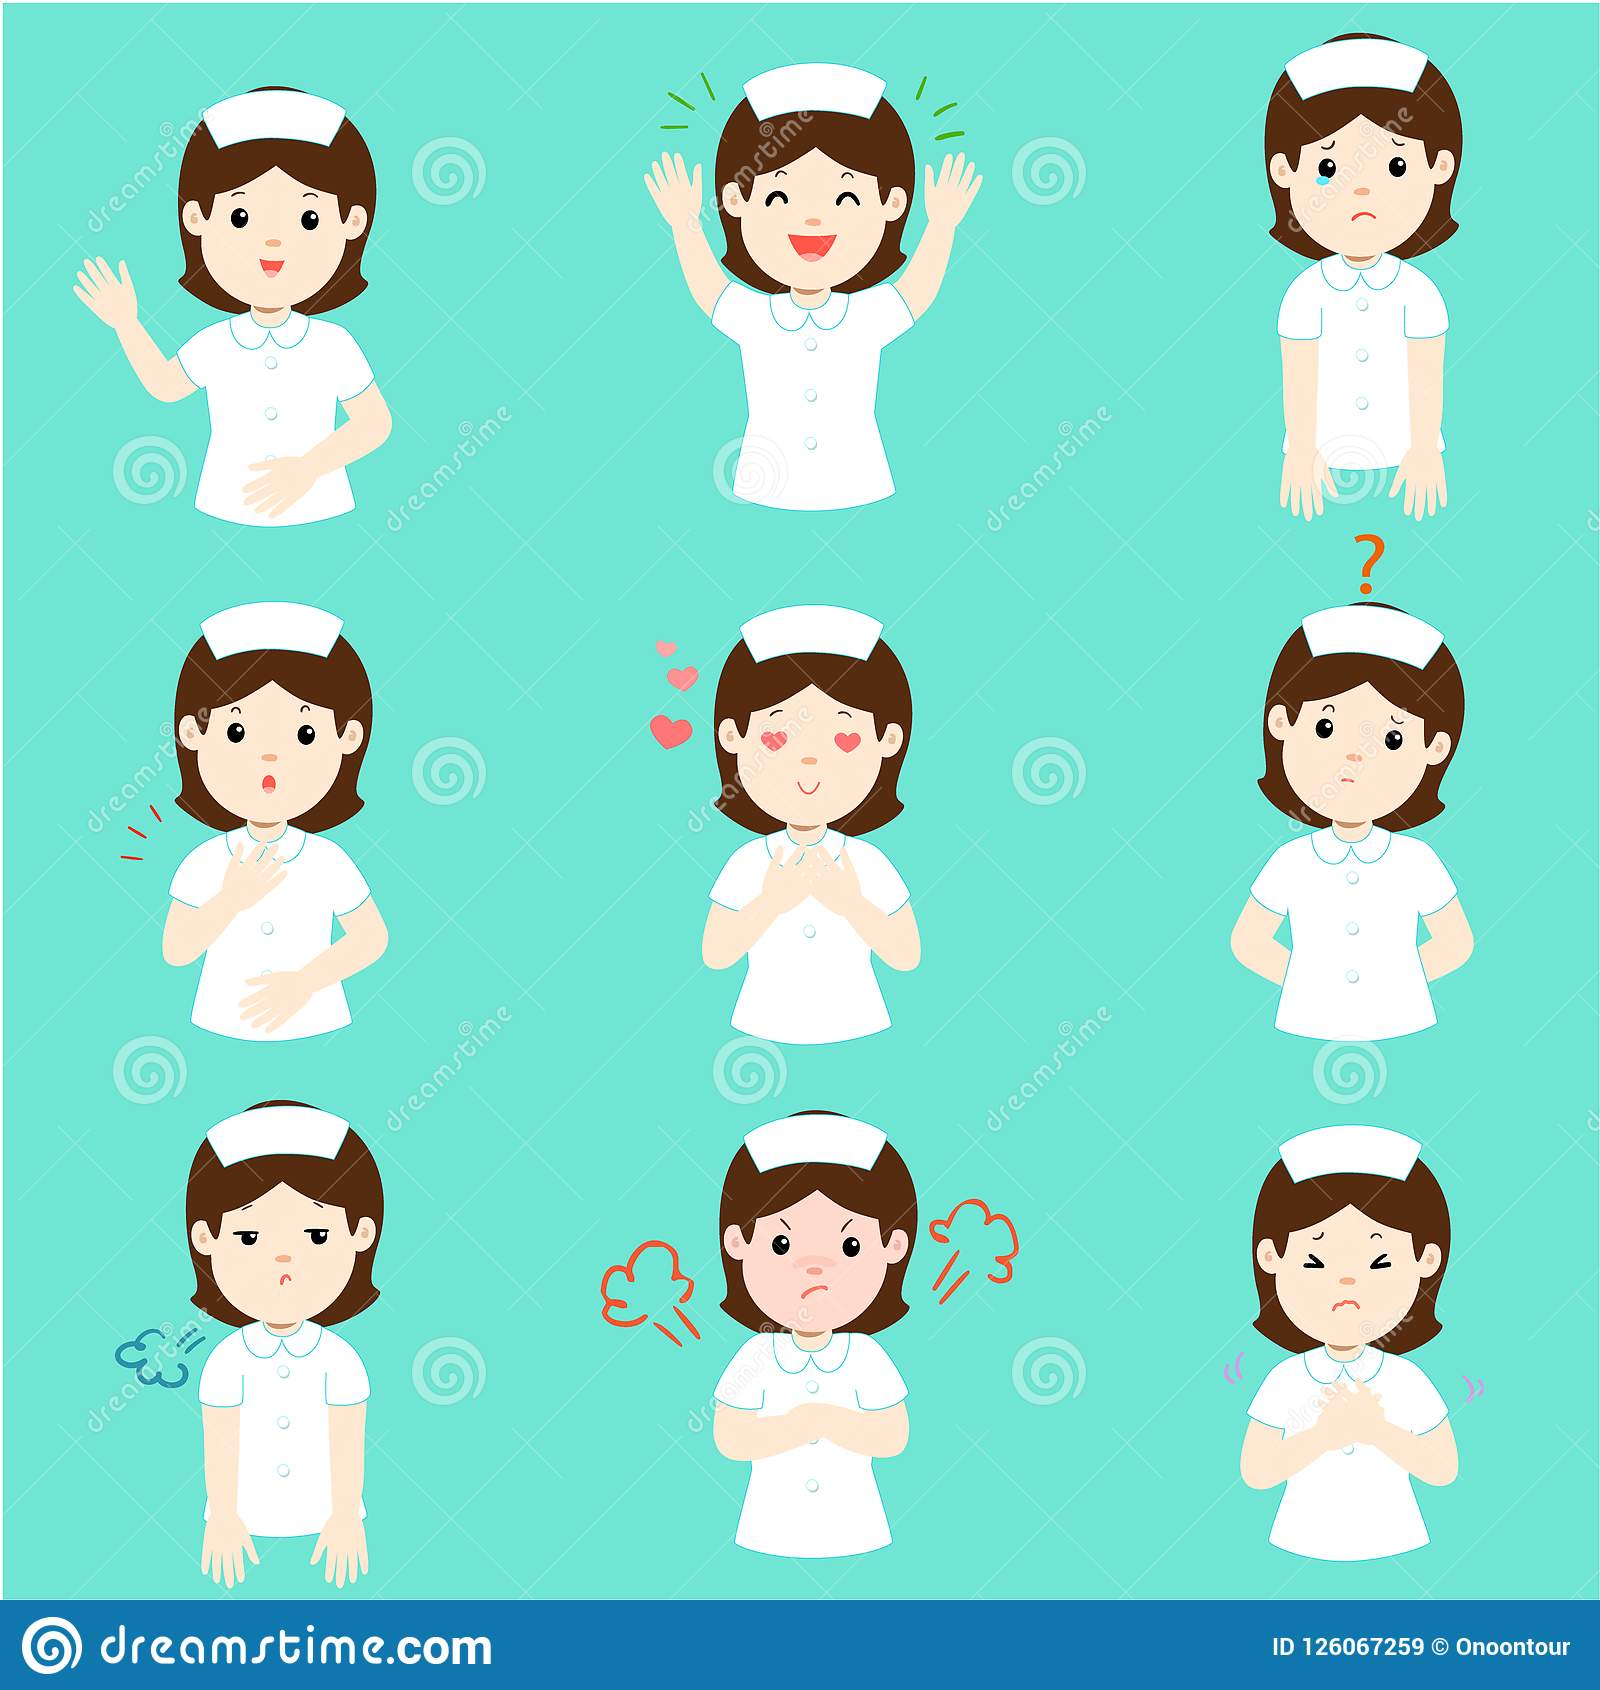 a07373aa9adc4 Nurse With Different Emotions Cartoon Vector. Stock Vector ...